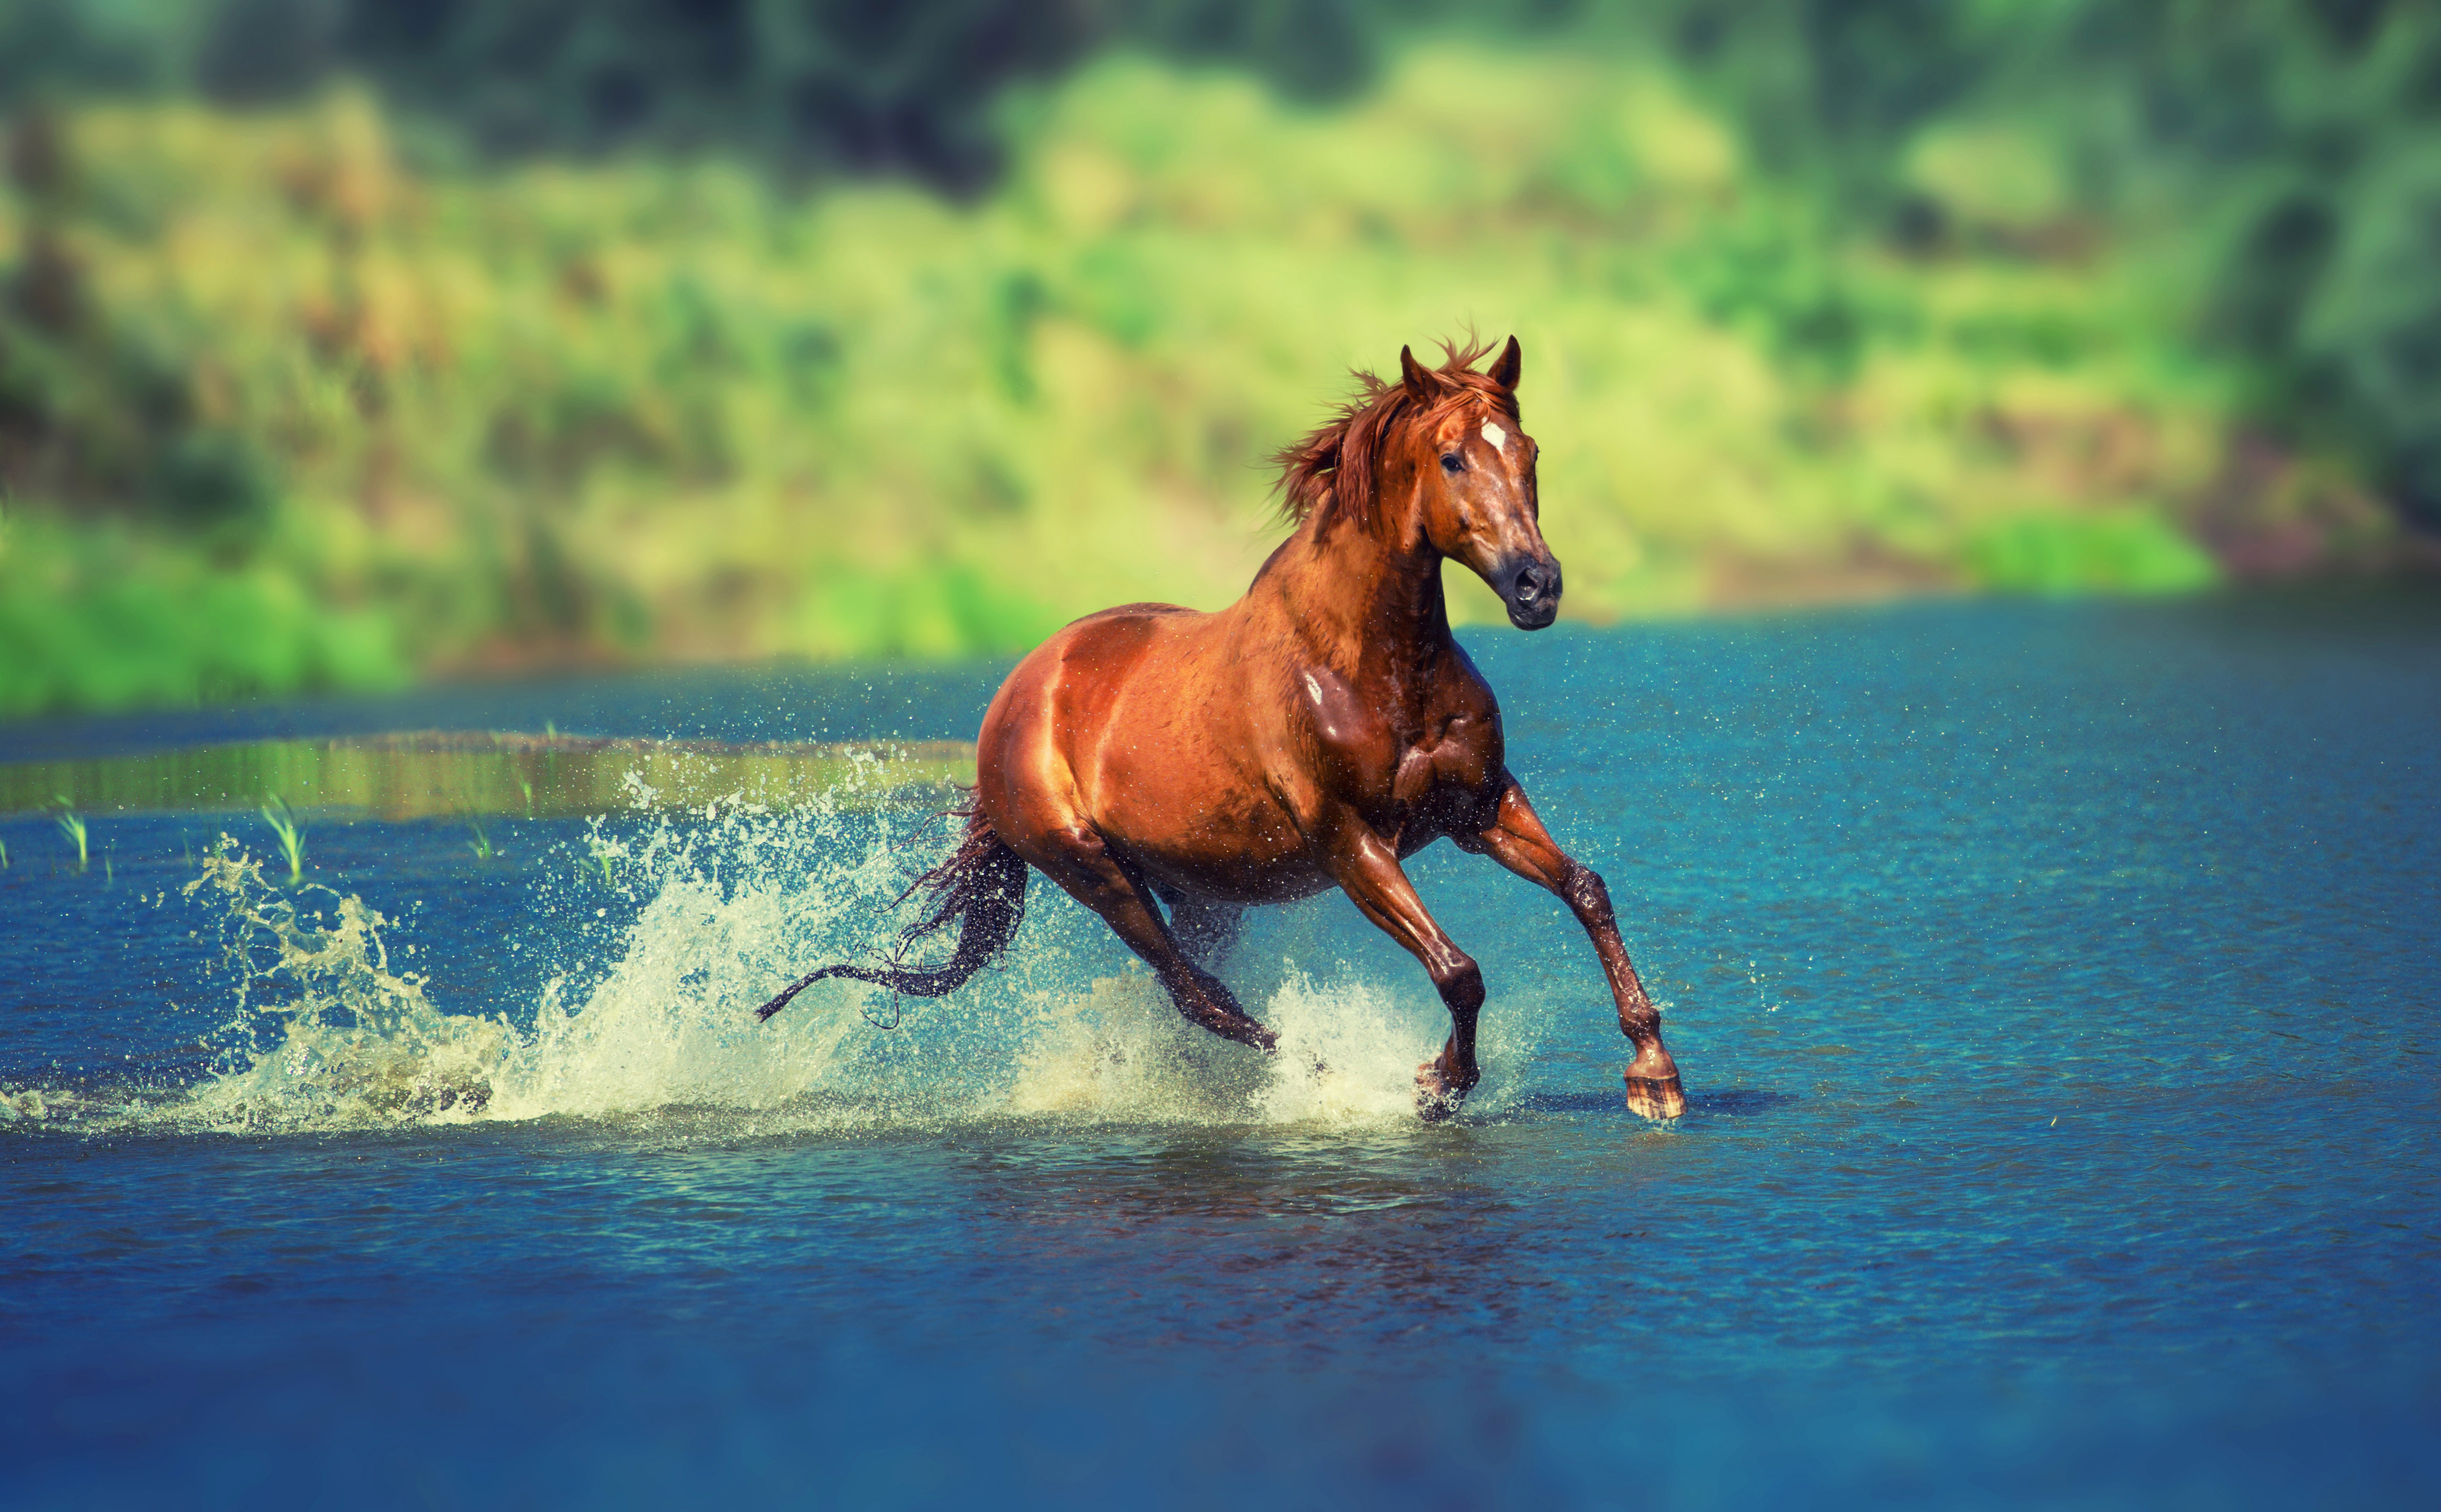 1366x768 Running Horse In Water 1366x768 Resolution Hd 4k Wallpapers Images Backgrounds Photos And Pictures